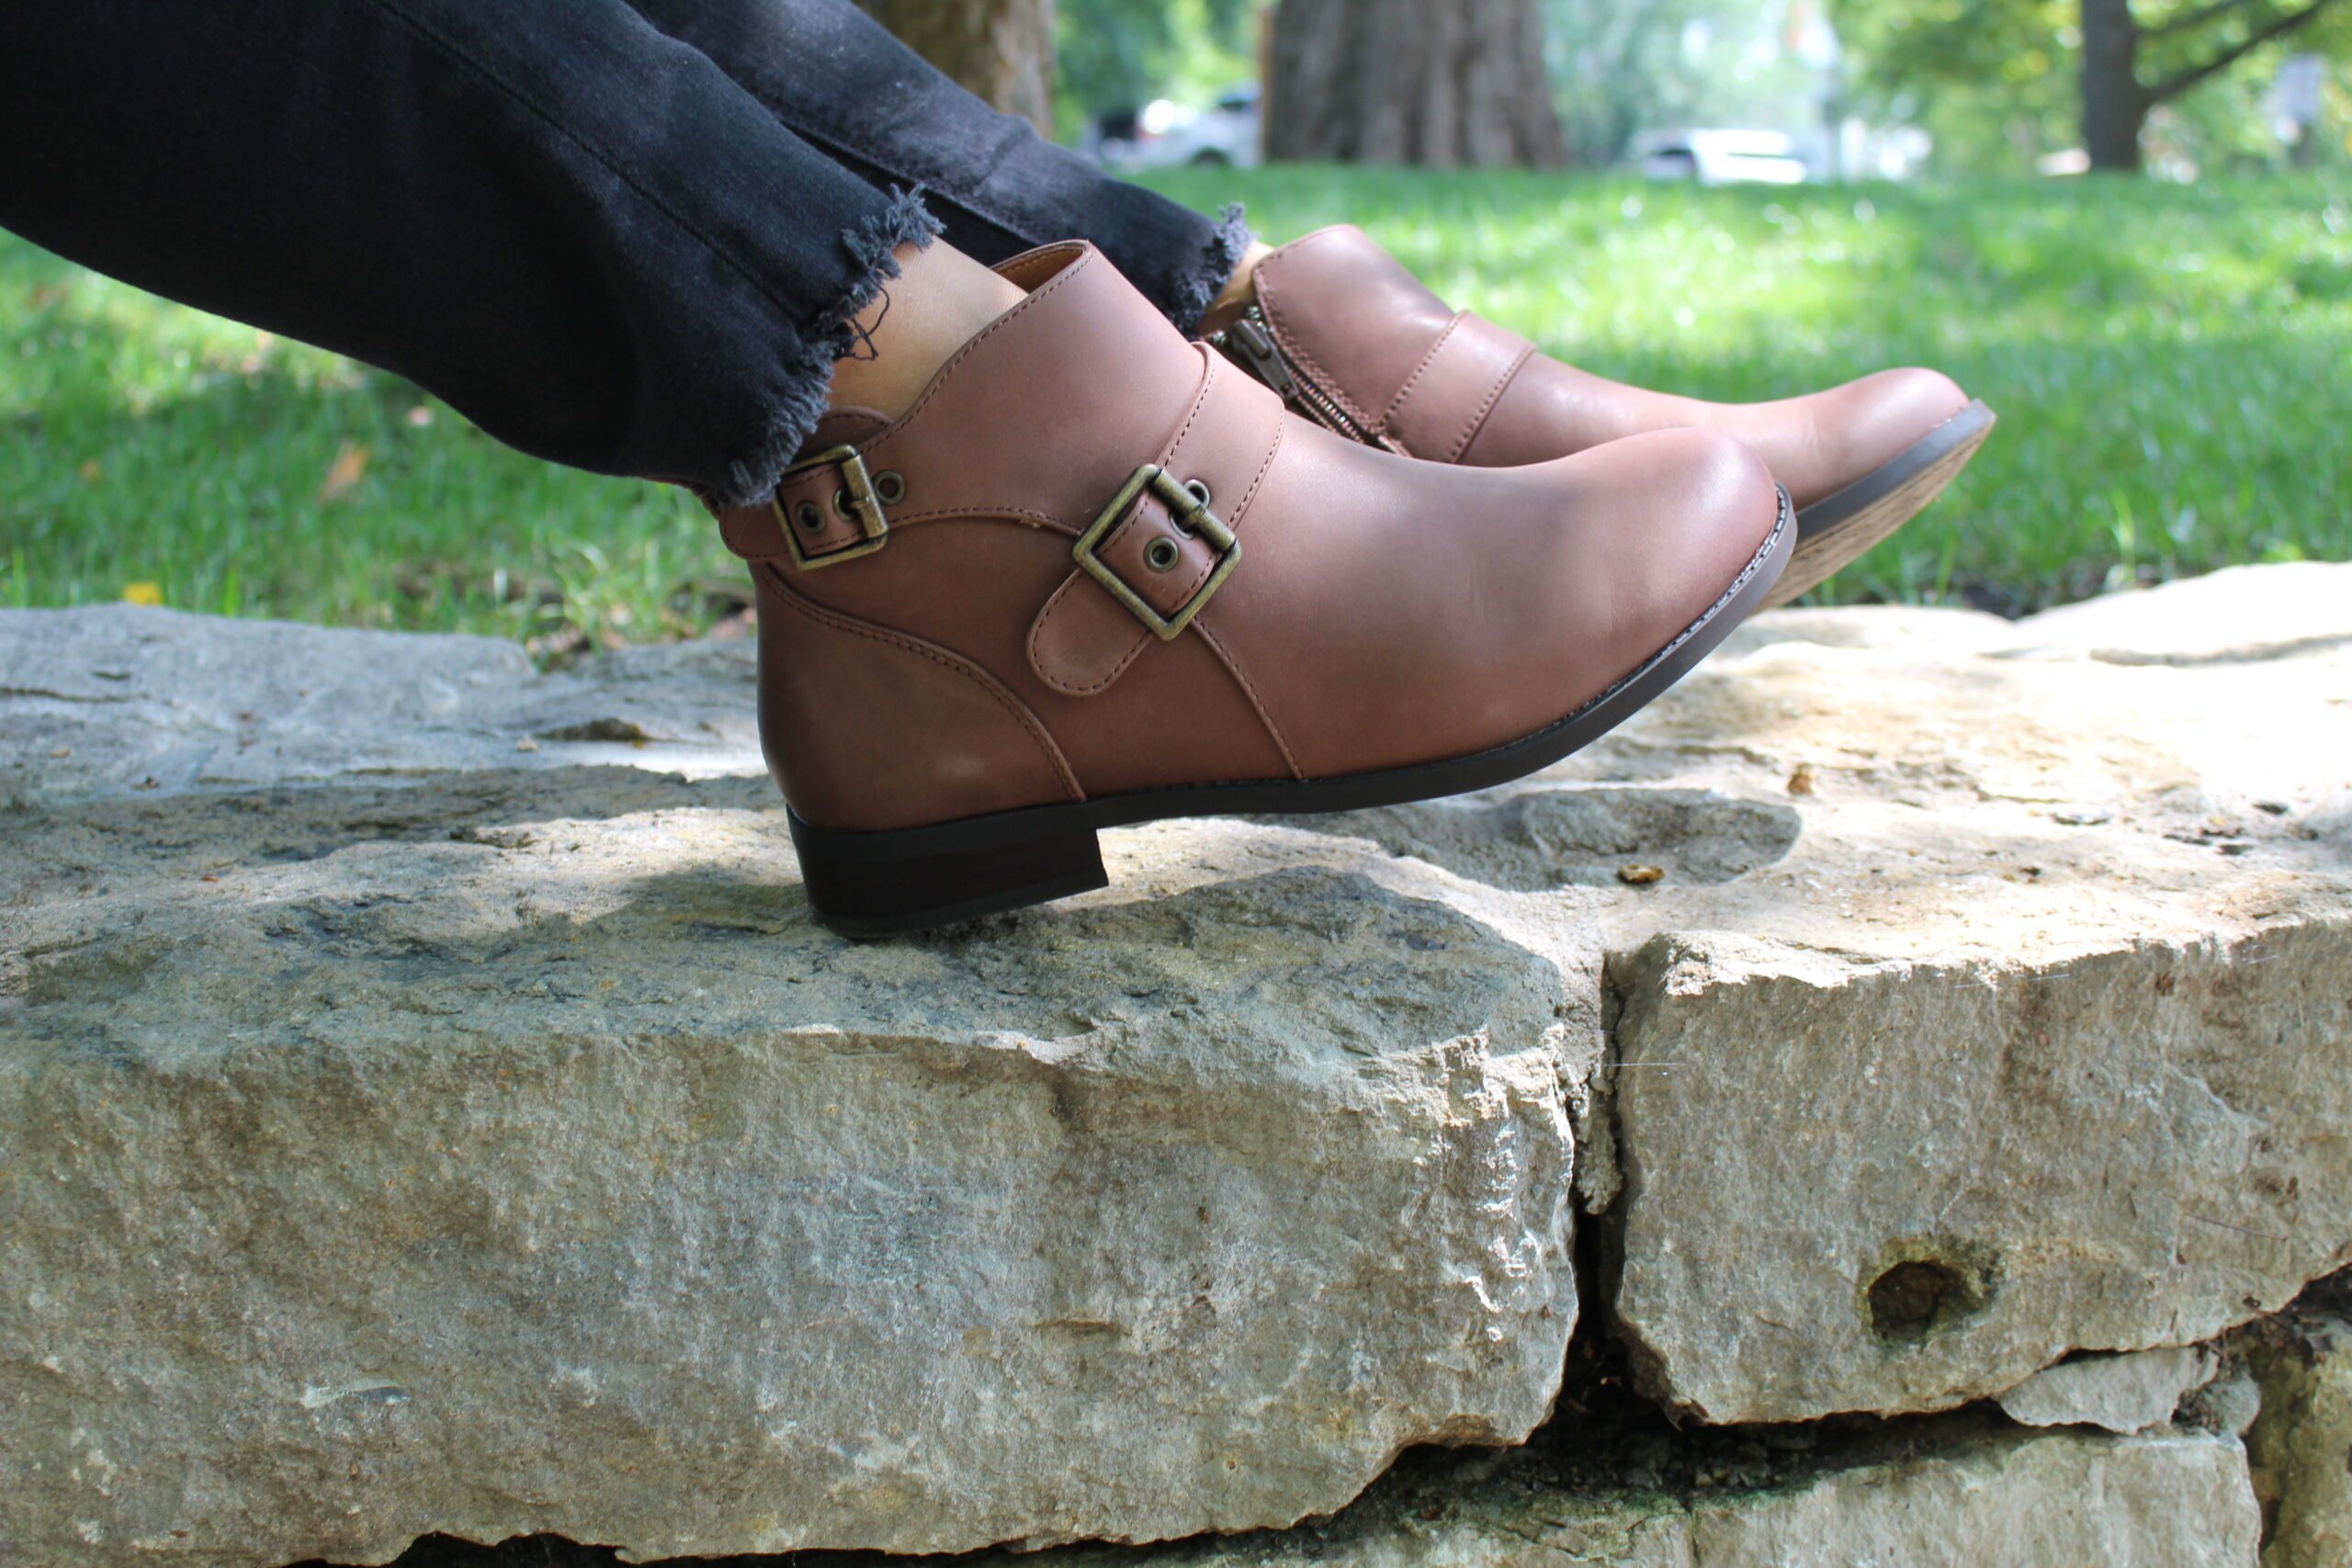 687014fb9a0c The Logan Bootie is the perfect shoe transitioning from the summer heat to  the cold days of winter. Fall is a huge transitional time of the year when  it ...